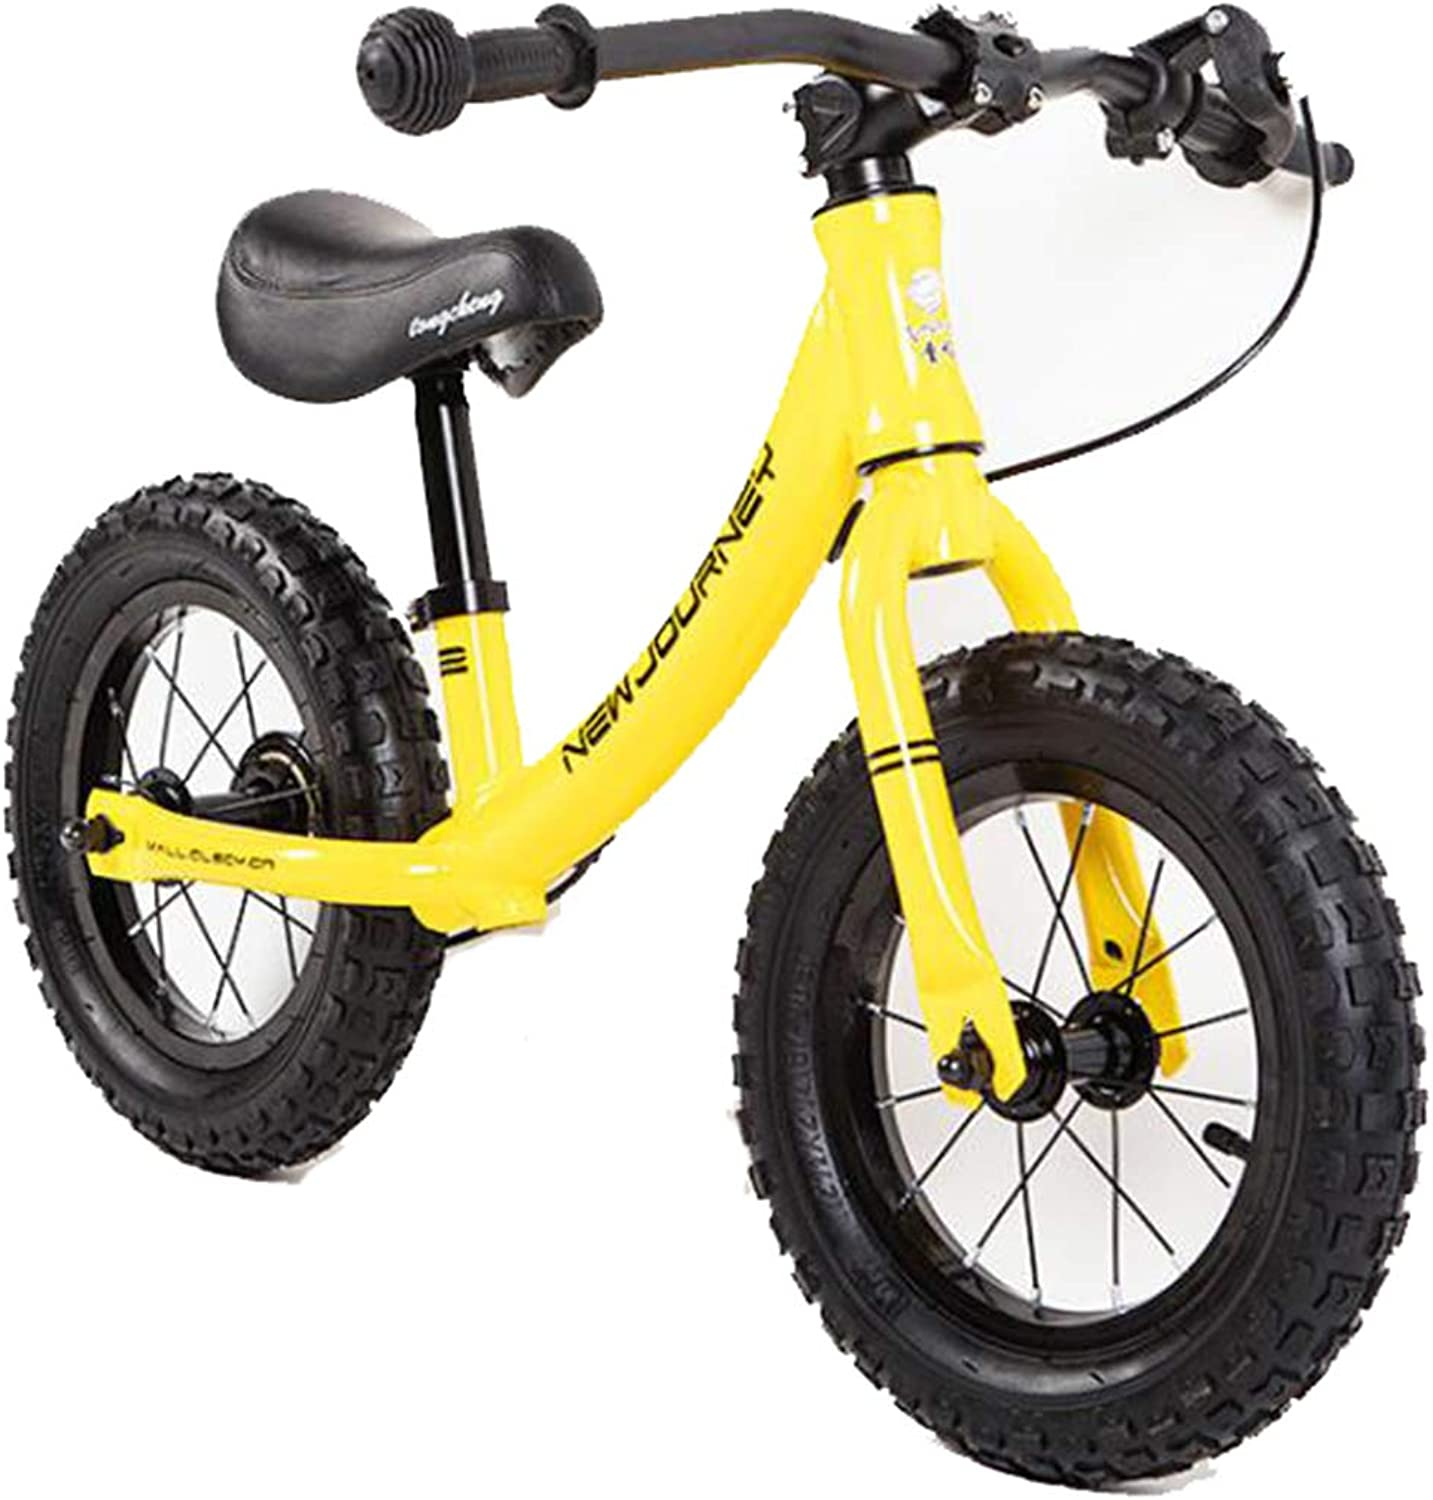 KuanDar Sports Balance Bike 12  No Bicycle Pedals, Rubber Tires, Adjustable Bicycle Seats, Brain Development, Confidence Training, Rear Brakes